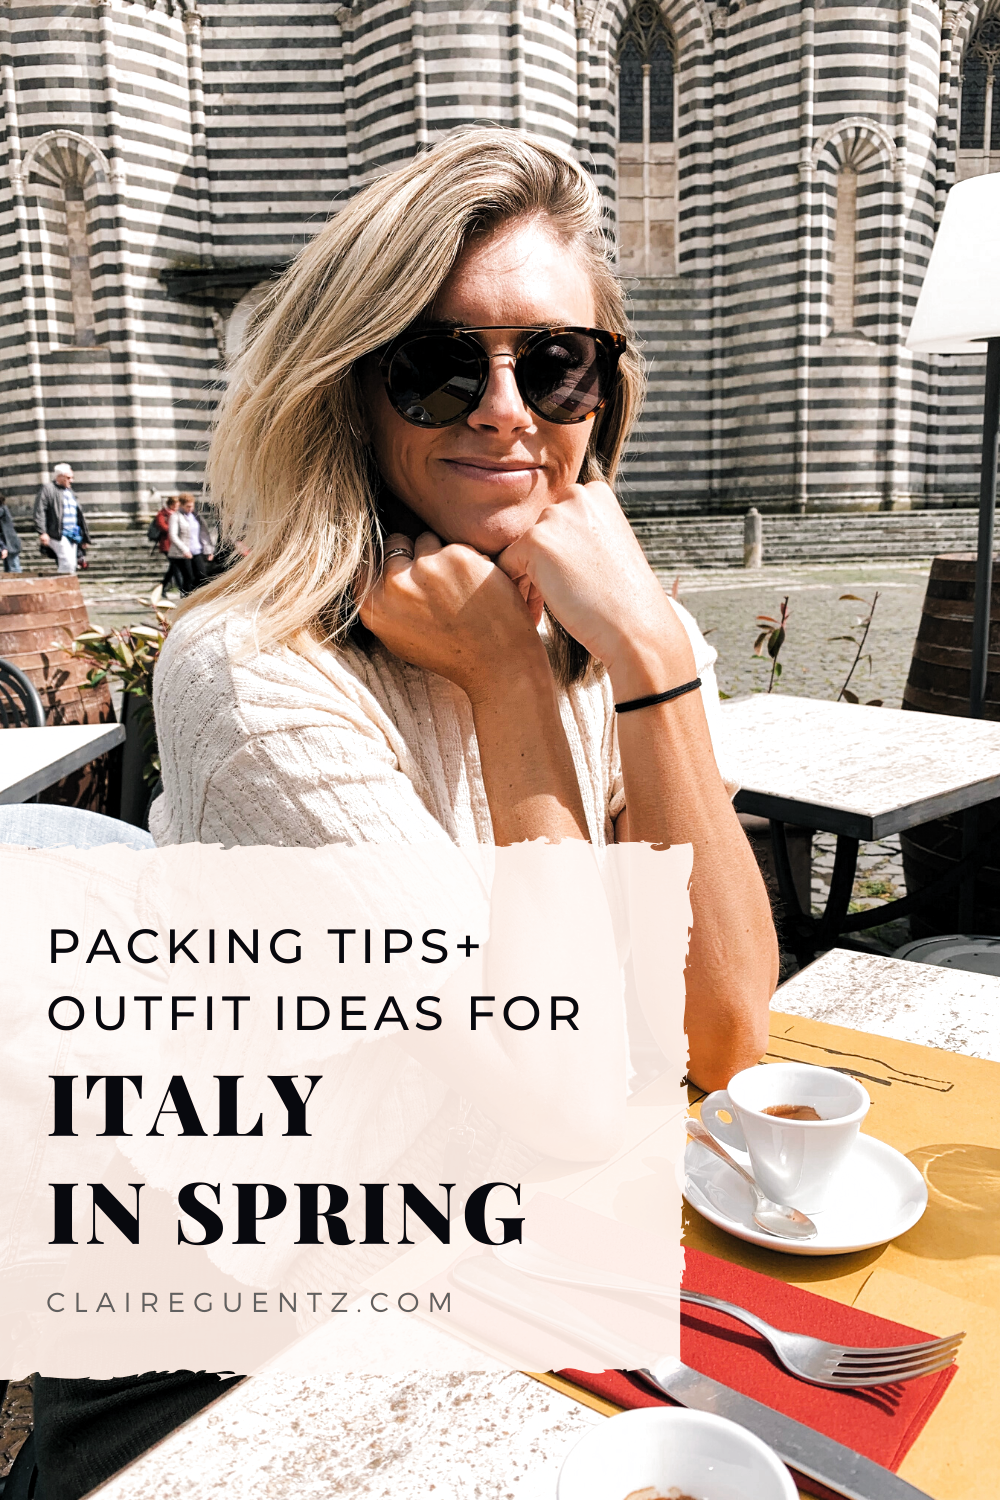 What to pack for Italy in spring   Packing for Italy can be tricky in spring because of the fluctuating temperatures. In this post, I'm telling you exactly what I brought for a two-week spring trip + Italy outfit ideas and inspiration! Read the post for my Italy vacation packing list + travel tips.   Claire Guentz #claireguentz #packinglist #Italy #Italytravel #Italyoutfits #Italyvacation